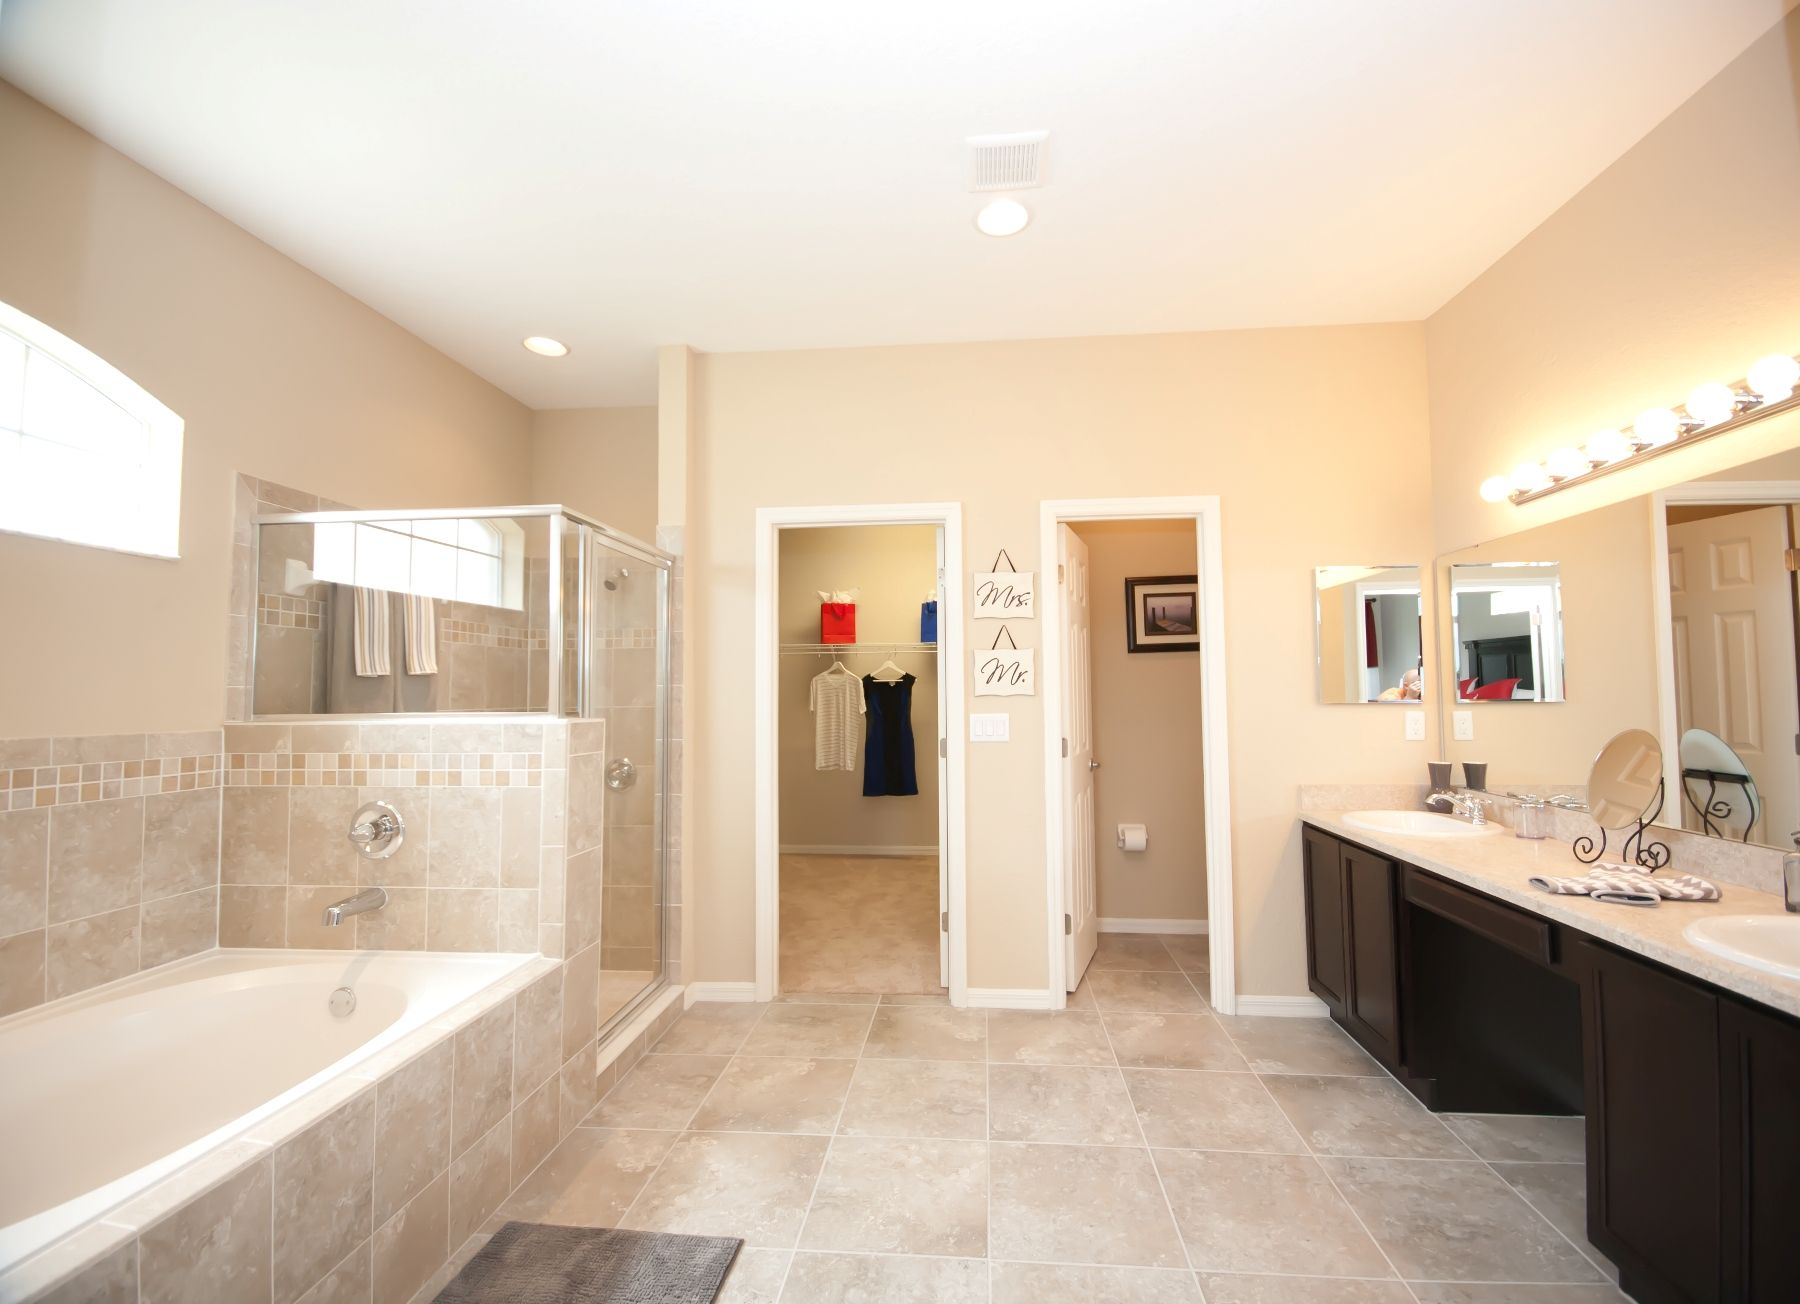 Model Home Bathroom Photos Of Great Lighting Open Space And Warm Neutral Colors Make